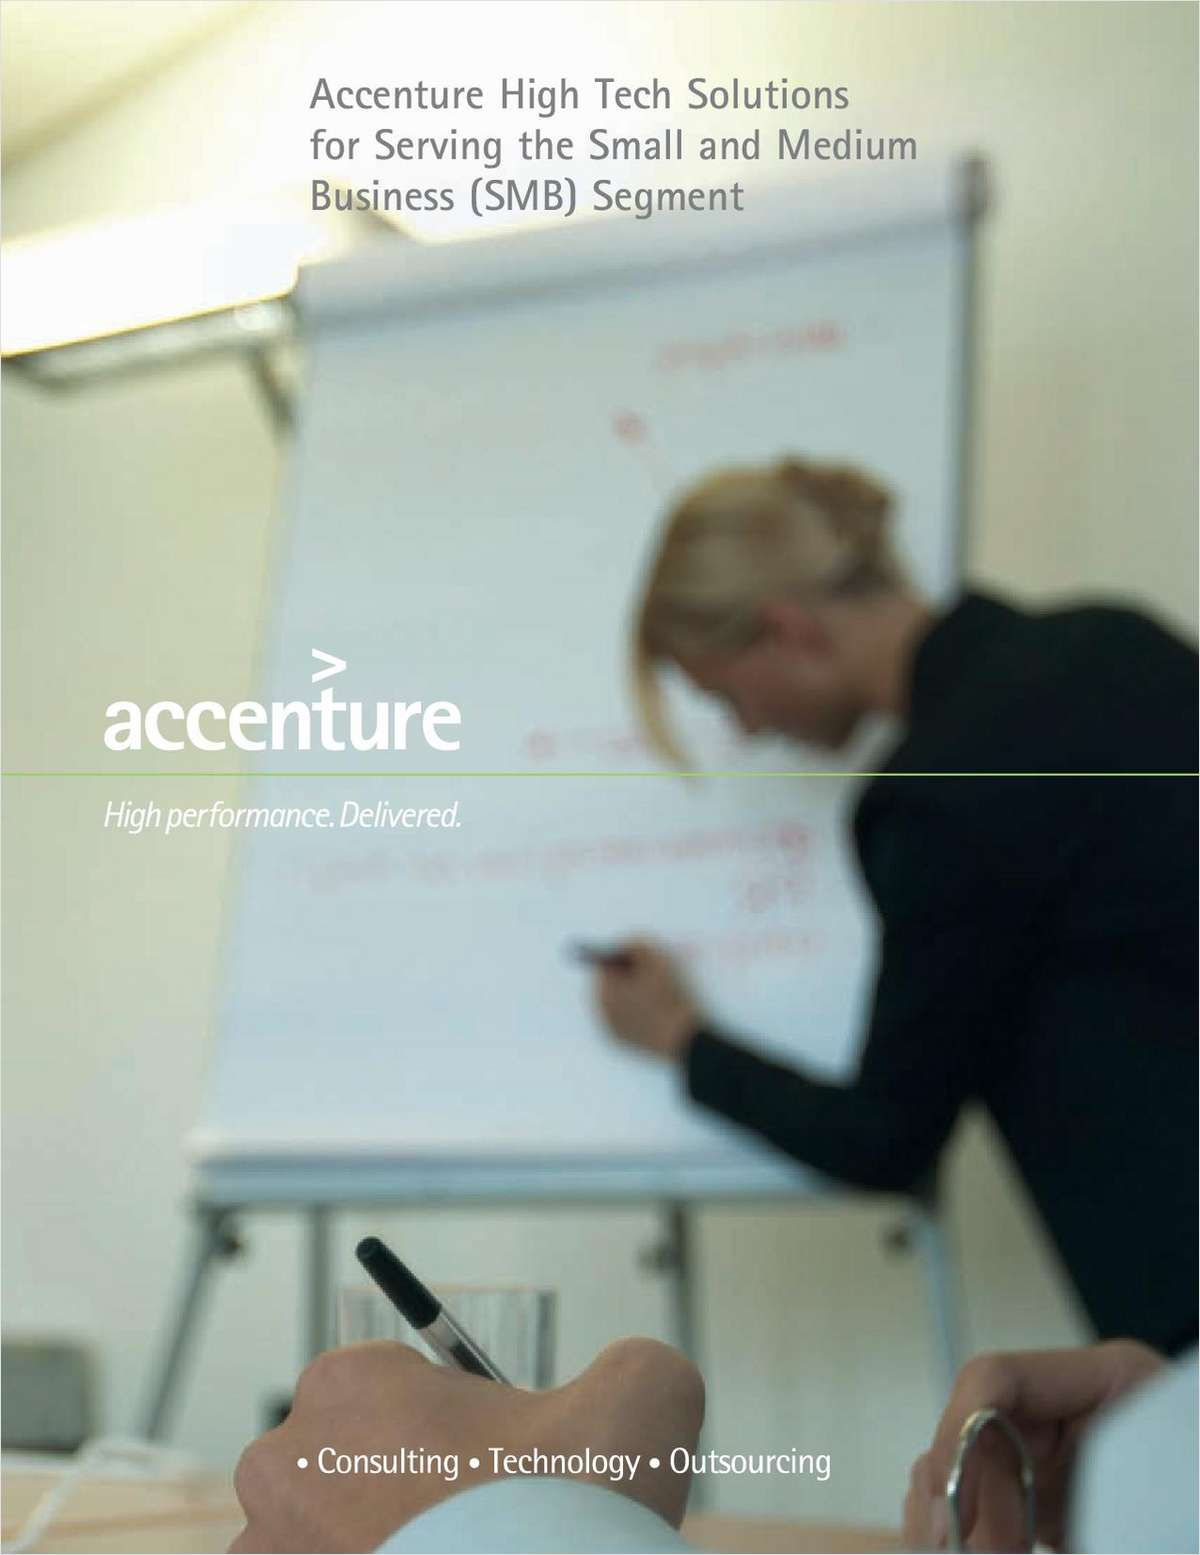 Accenture High Tech Solutions for Serving the Small and Medium Business (SMB) Segment